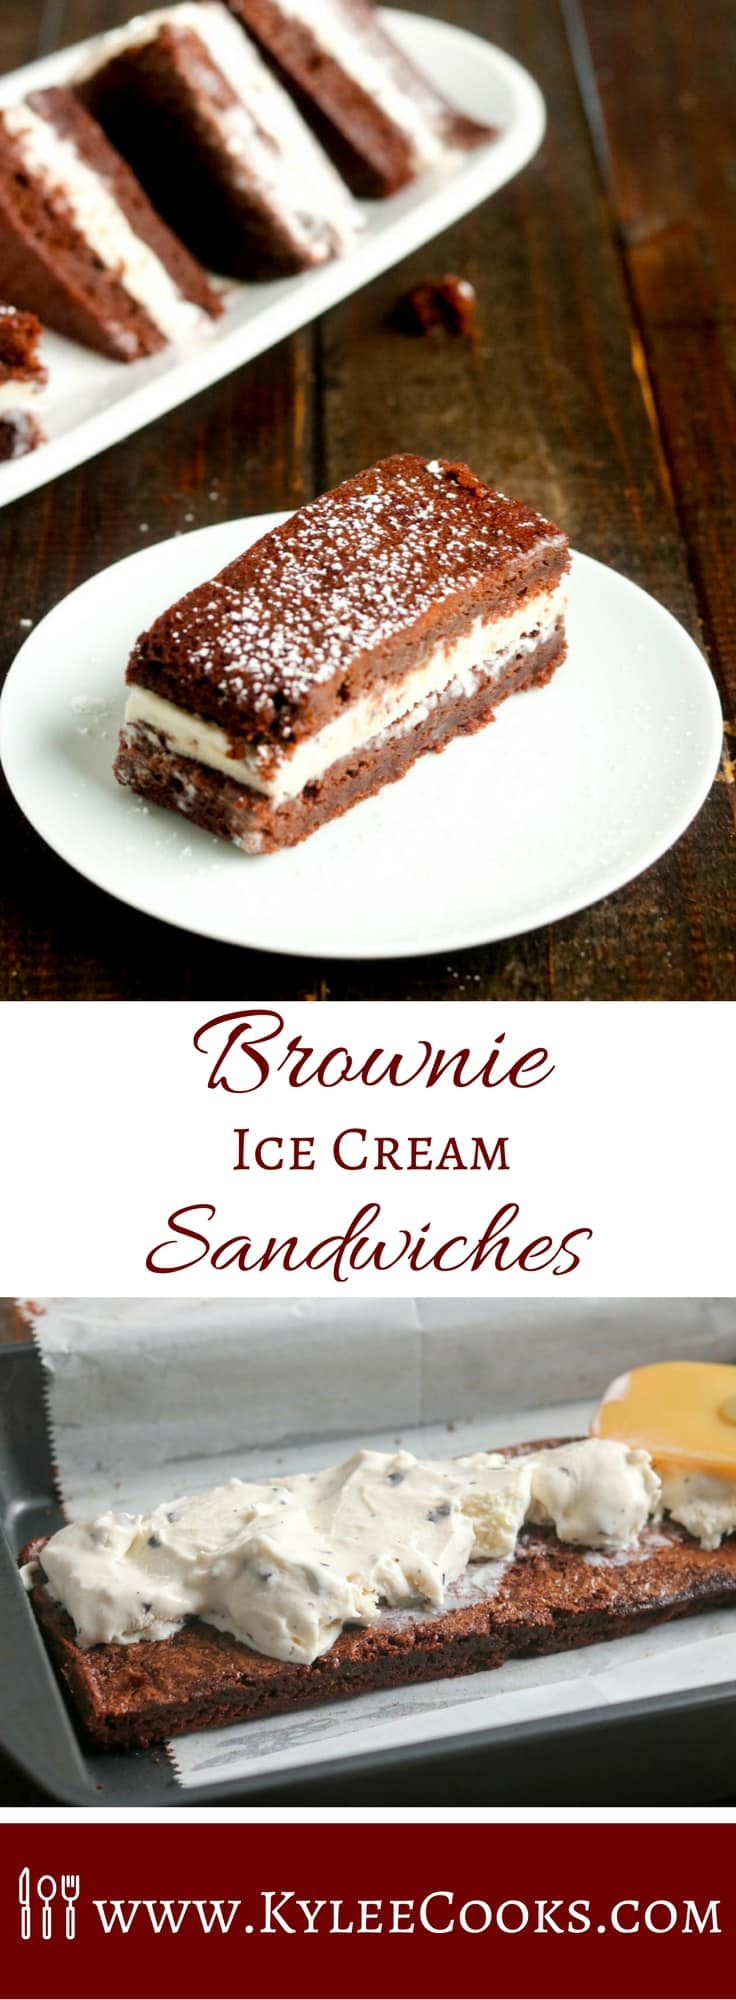 These delicious little Brownie Ice Cream Sandwiches are JUST the thing, with chewy brownies for the outside, and a rich and creamy gelato for the center.